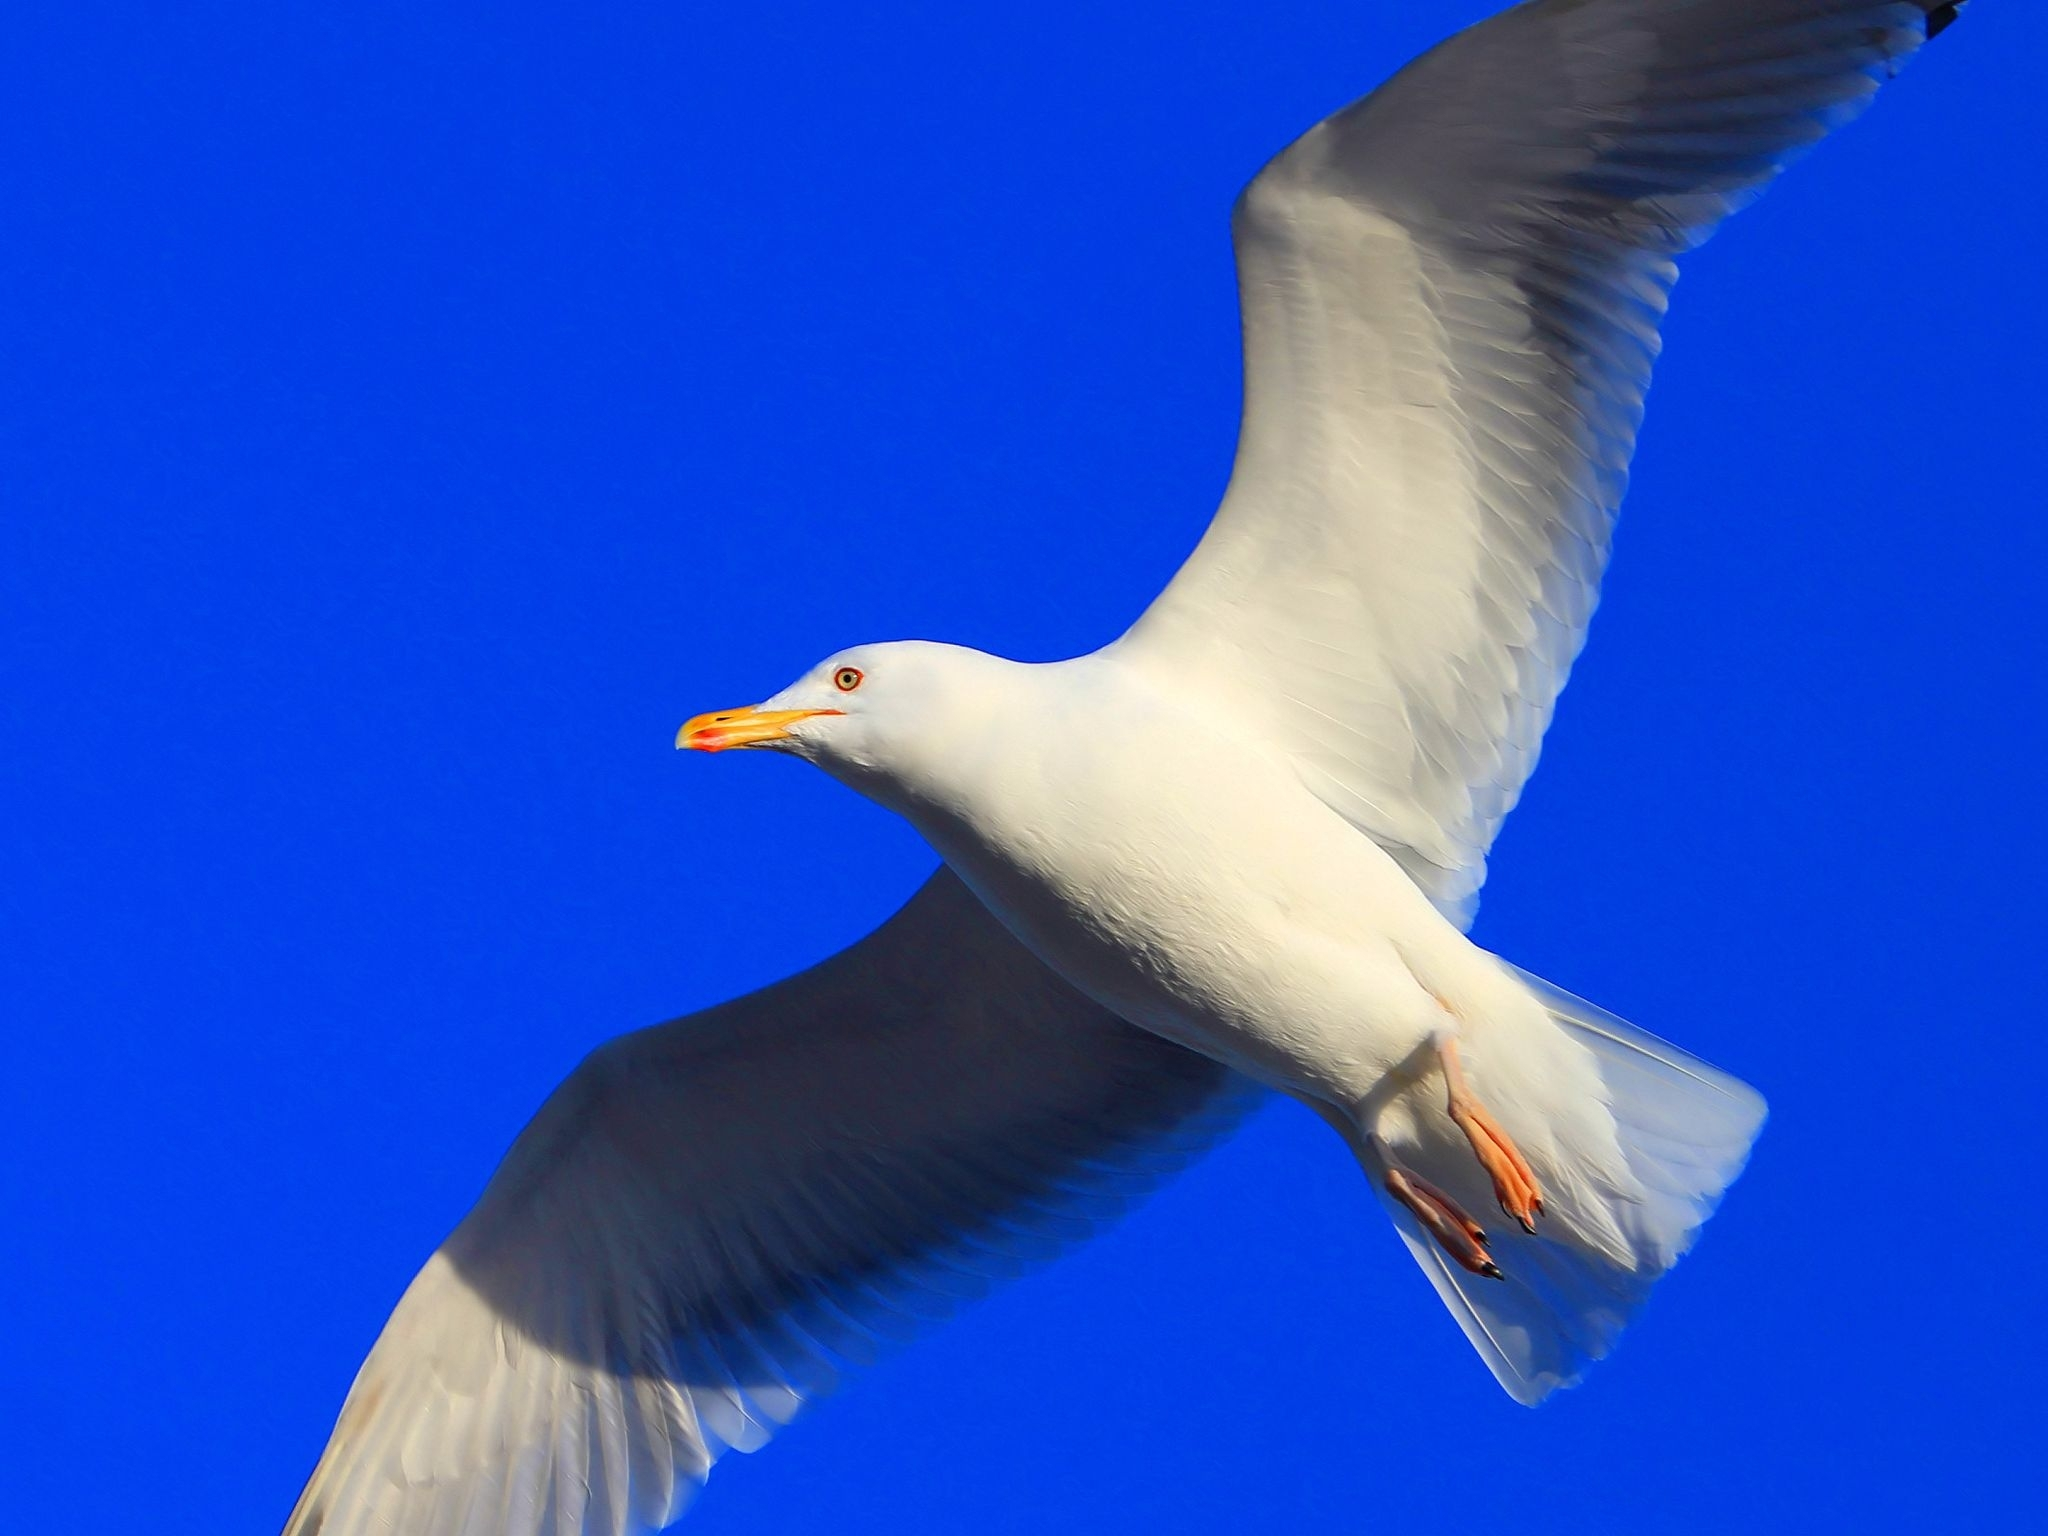 62536 download wallpaper Animals, Gull, Seagull, Bird, Flight, Sweep, Wave screensavers and pictures for free